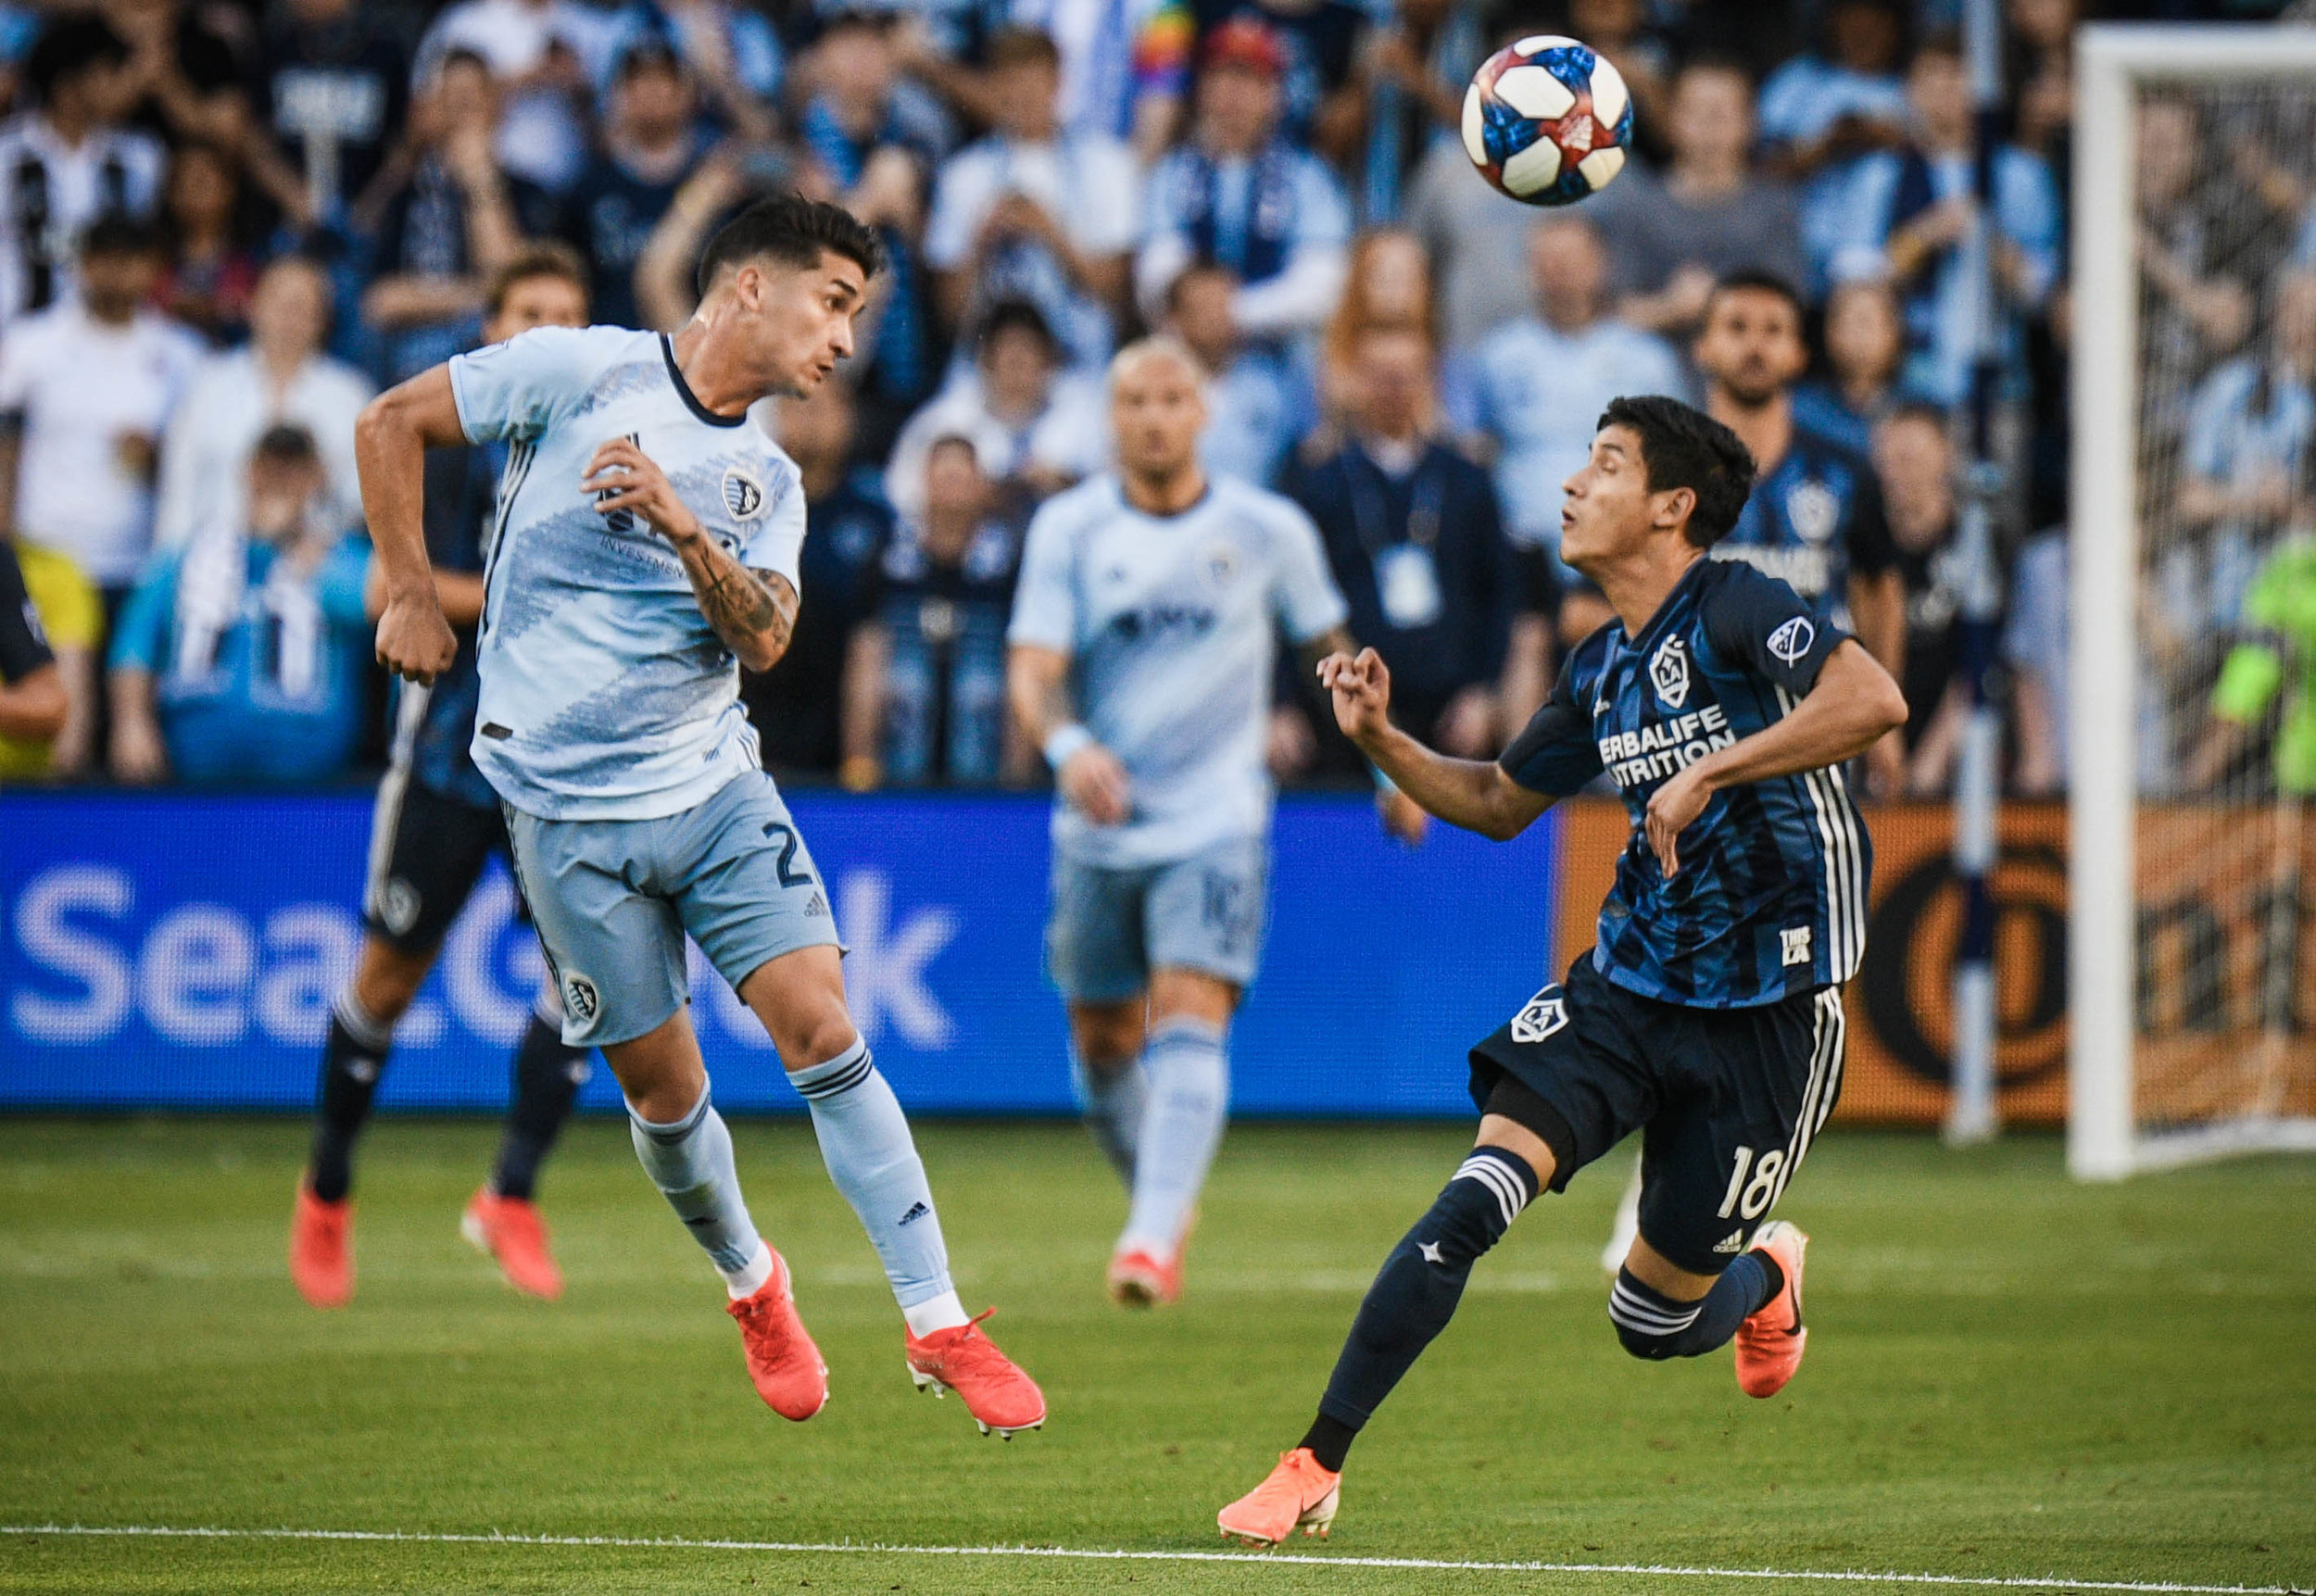 Felipe Gutiérrez (21) heads the ball during the game against LA Galaxy on Wednesday, May 29, 2019 at Children's Mercy Park in Kansas City, Kansas. Sporting fell to the Galaxy 2-0.